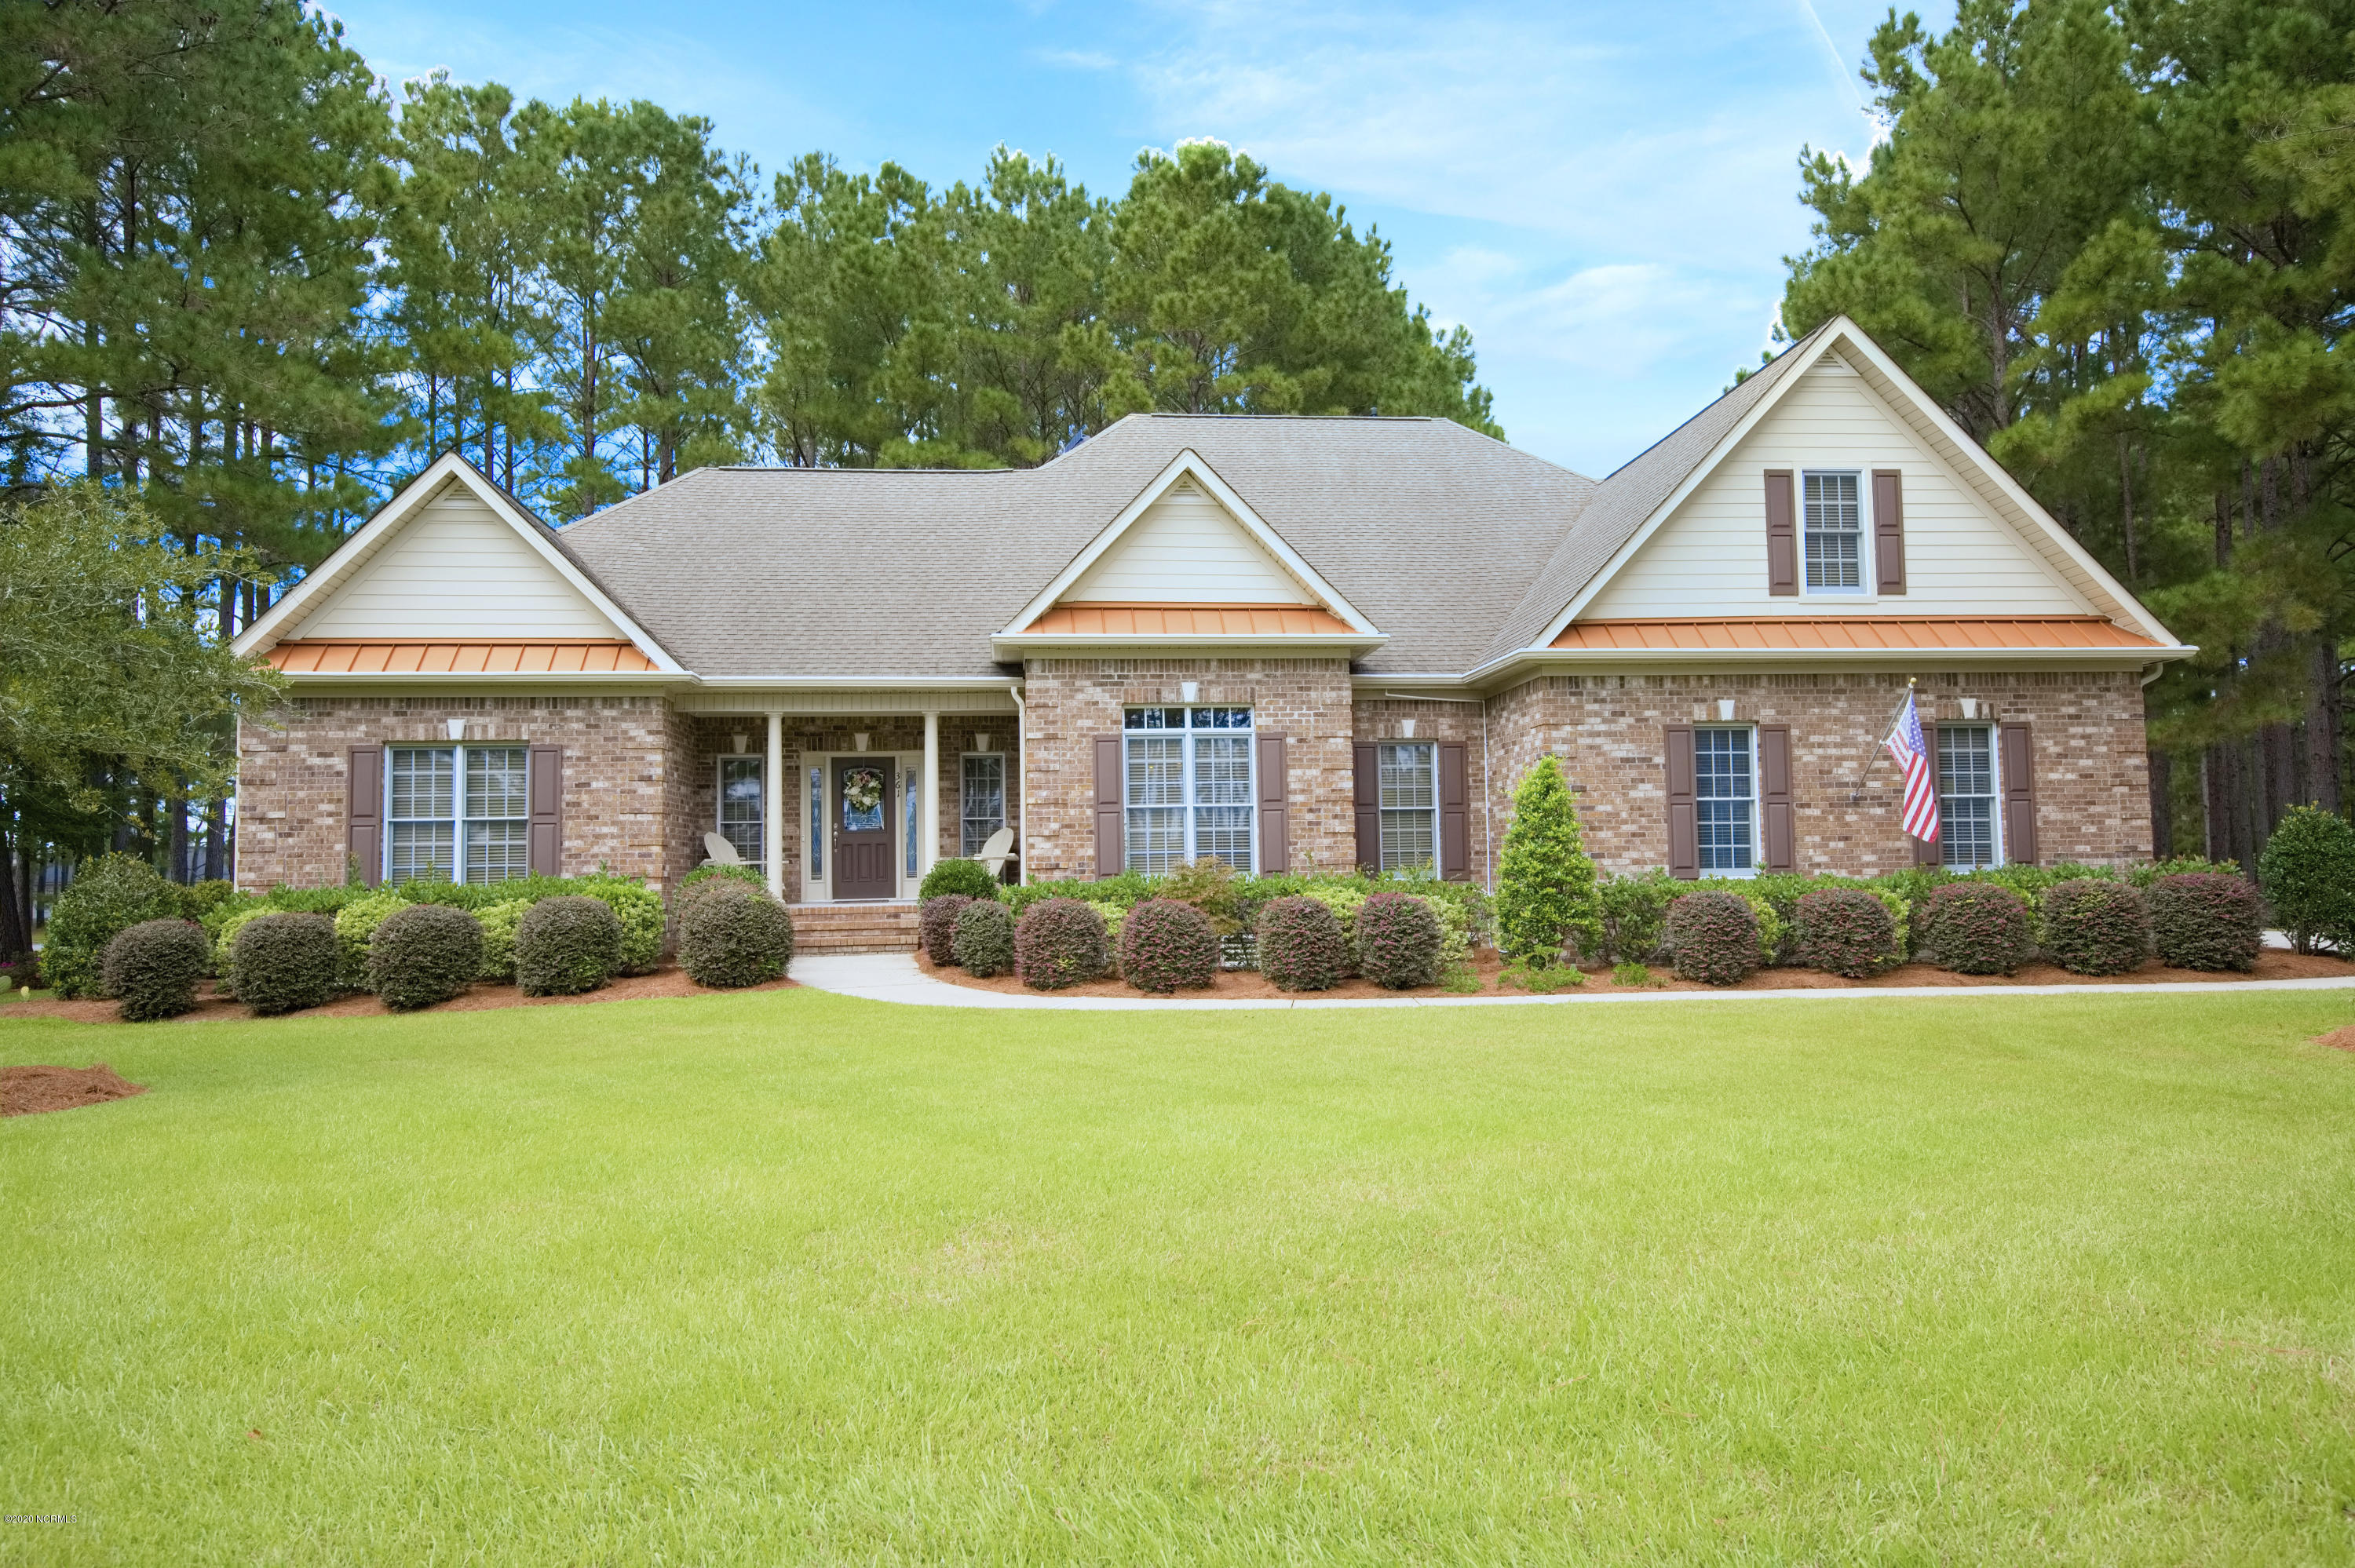 361 Autumn Pheasant Loop, Calabash, North Carolina 28467, 3 Bedrooms Bedrooms, 11 Rooms Rooms,3 BathroomsBathrooms,Single family residence,For sale,Autumn Pheasant,100238563